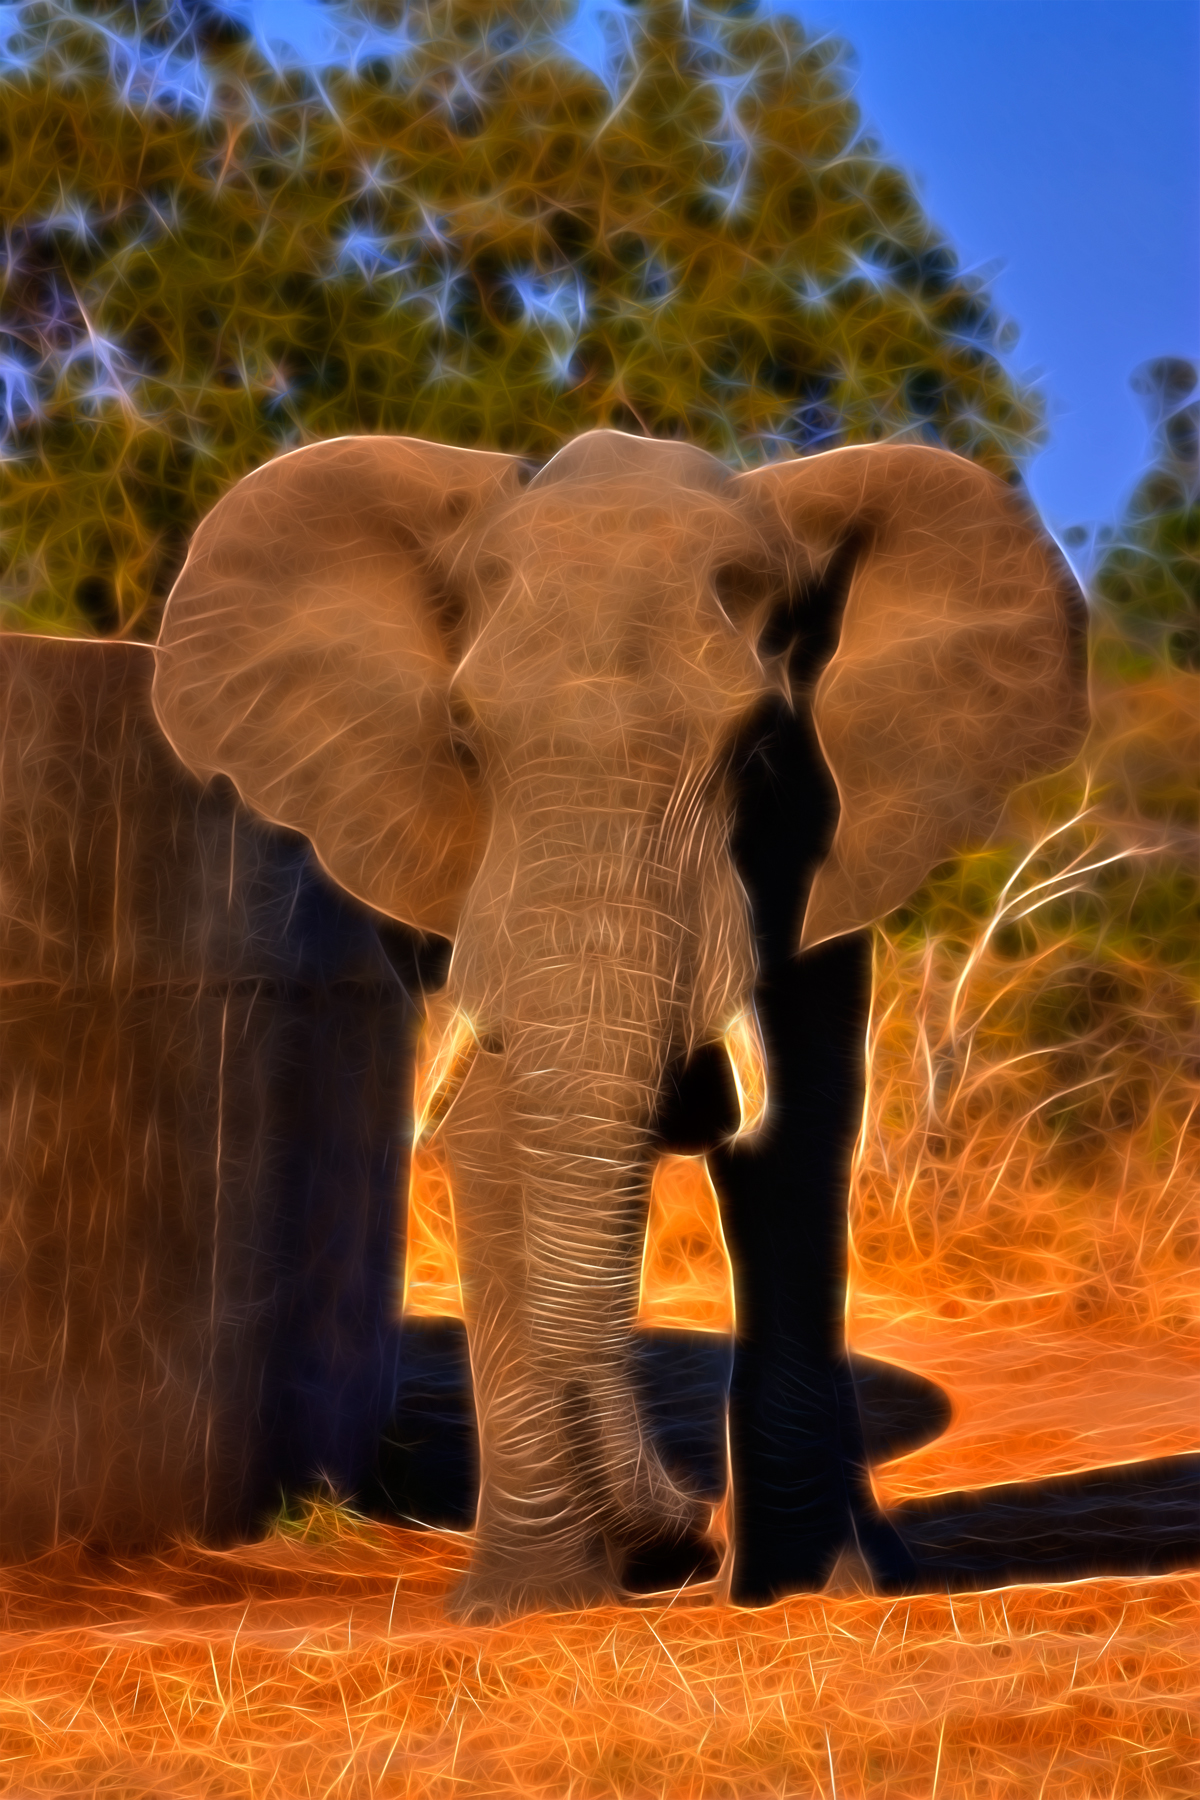 Safari Elephant Abstract, Resolution, Photomanipulatio, Picture, Pretty, HQ Photo